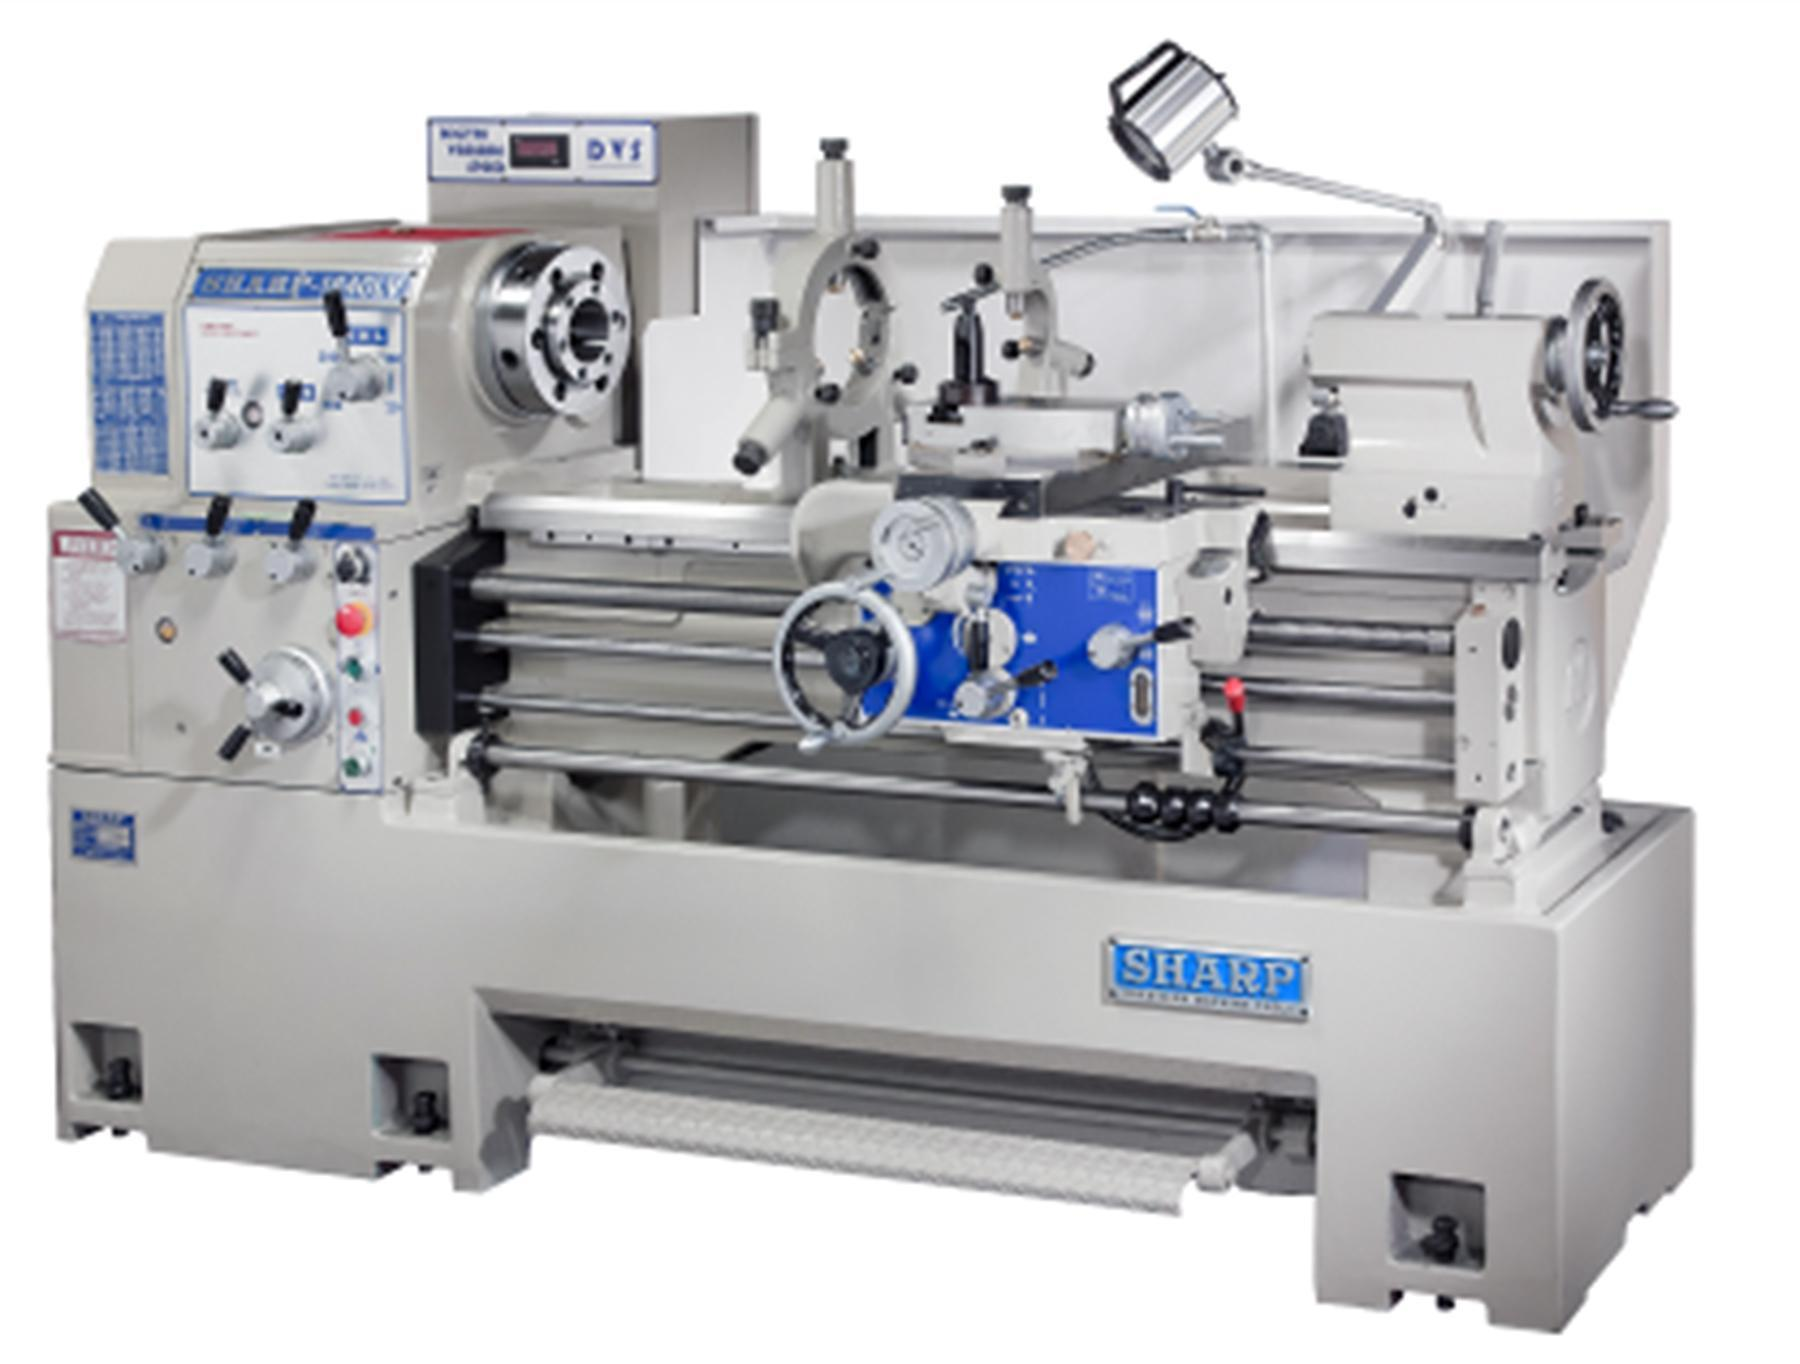 NEW, SHARP MODEL 1640LV PRECISION LATHE